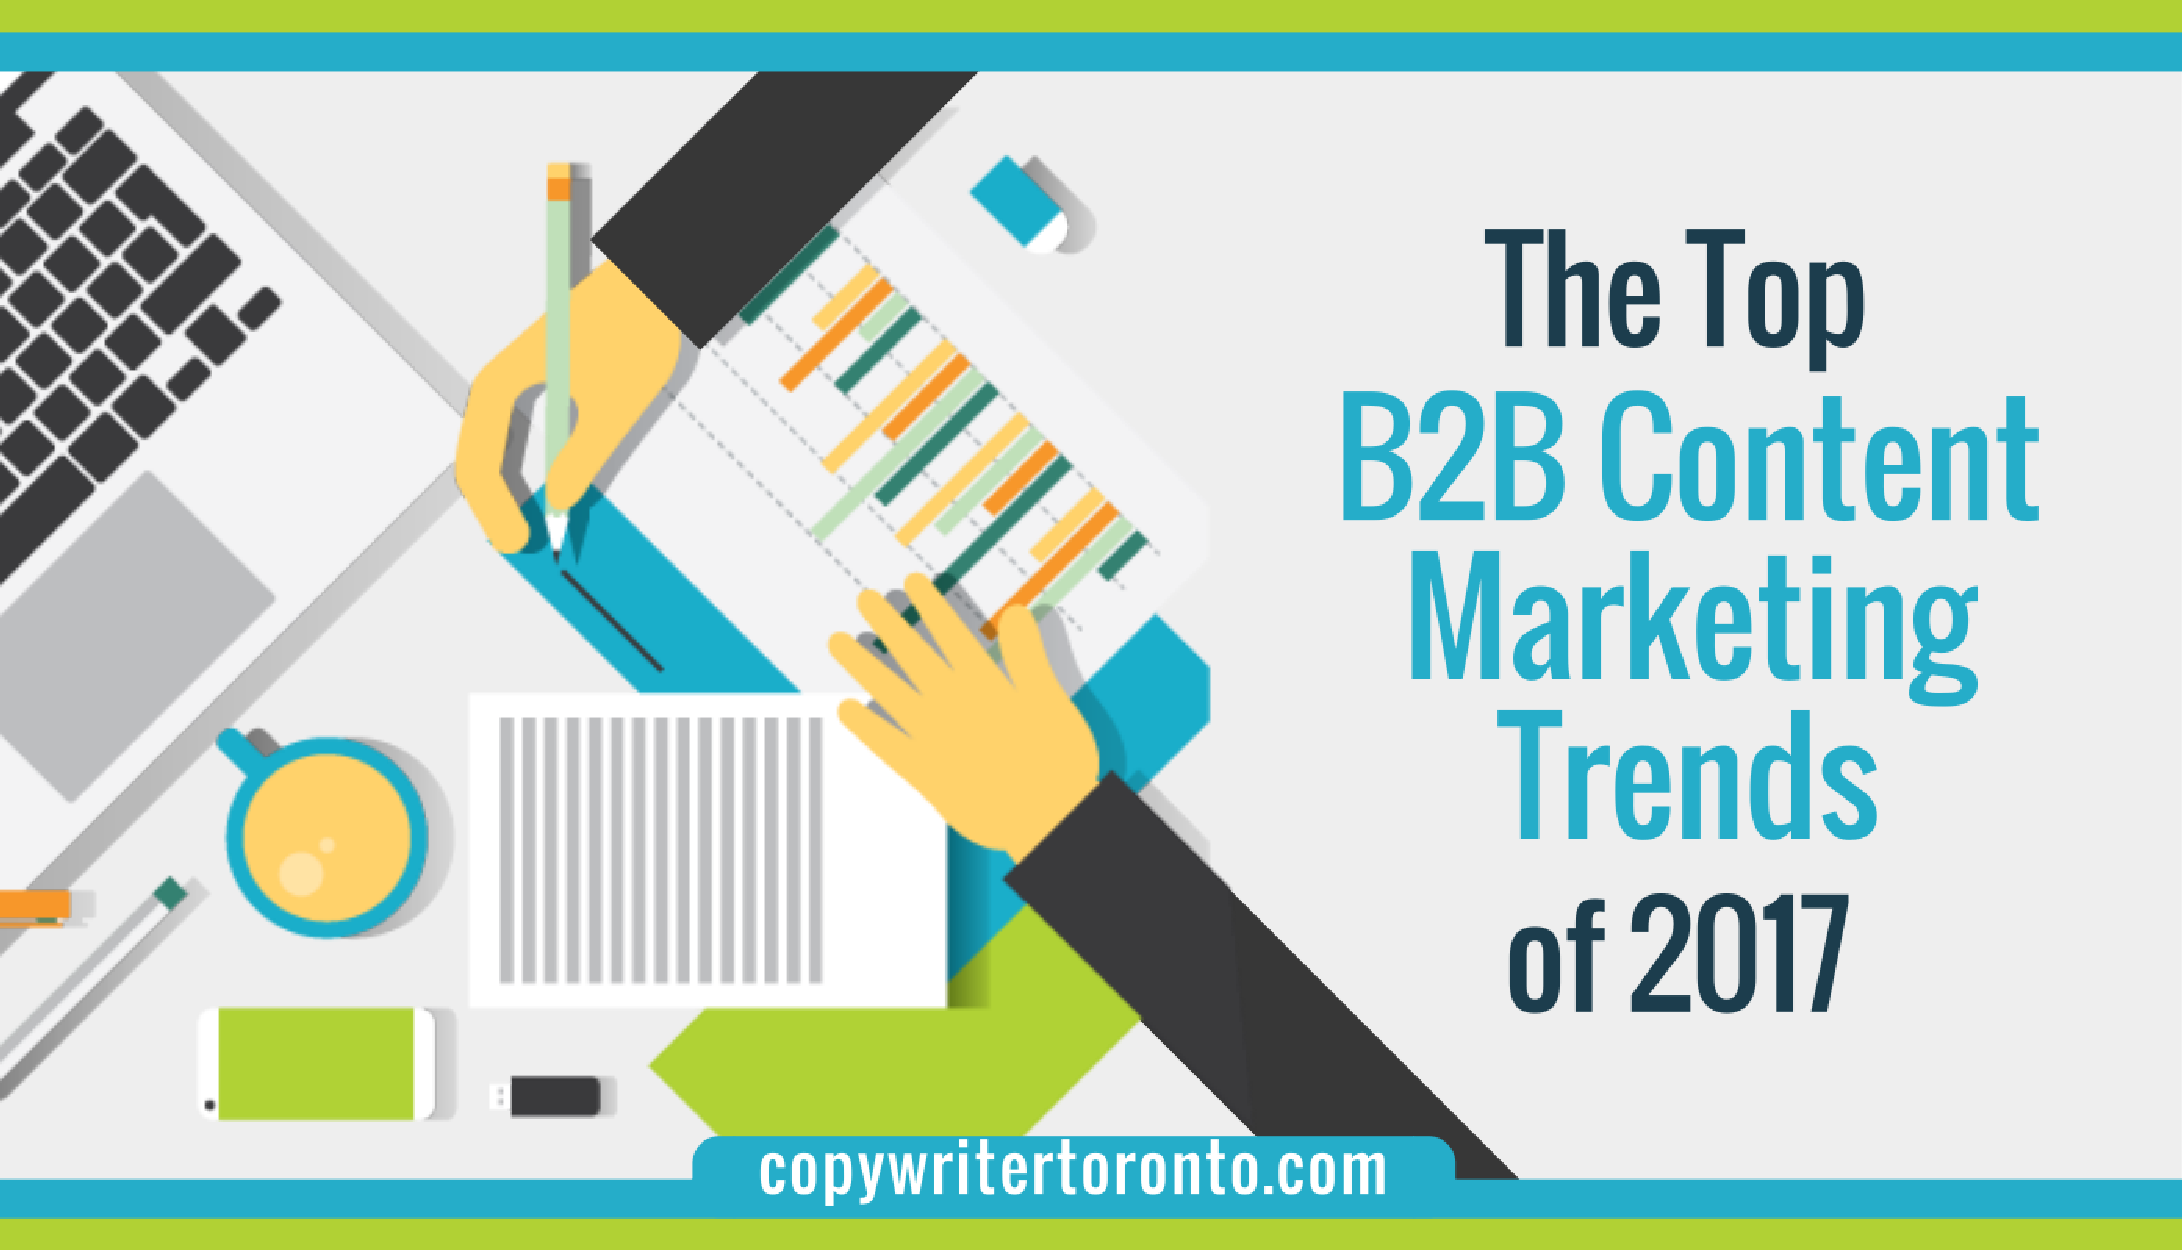 2017 B2B Marketing Trends